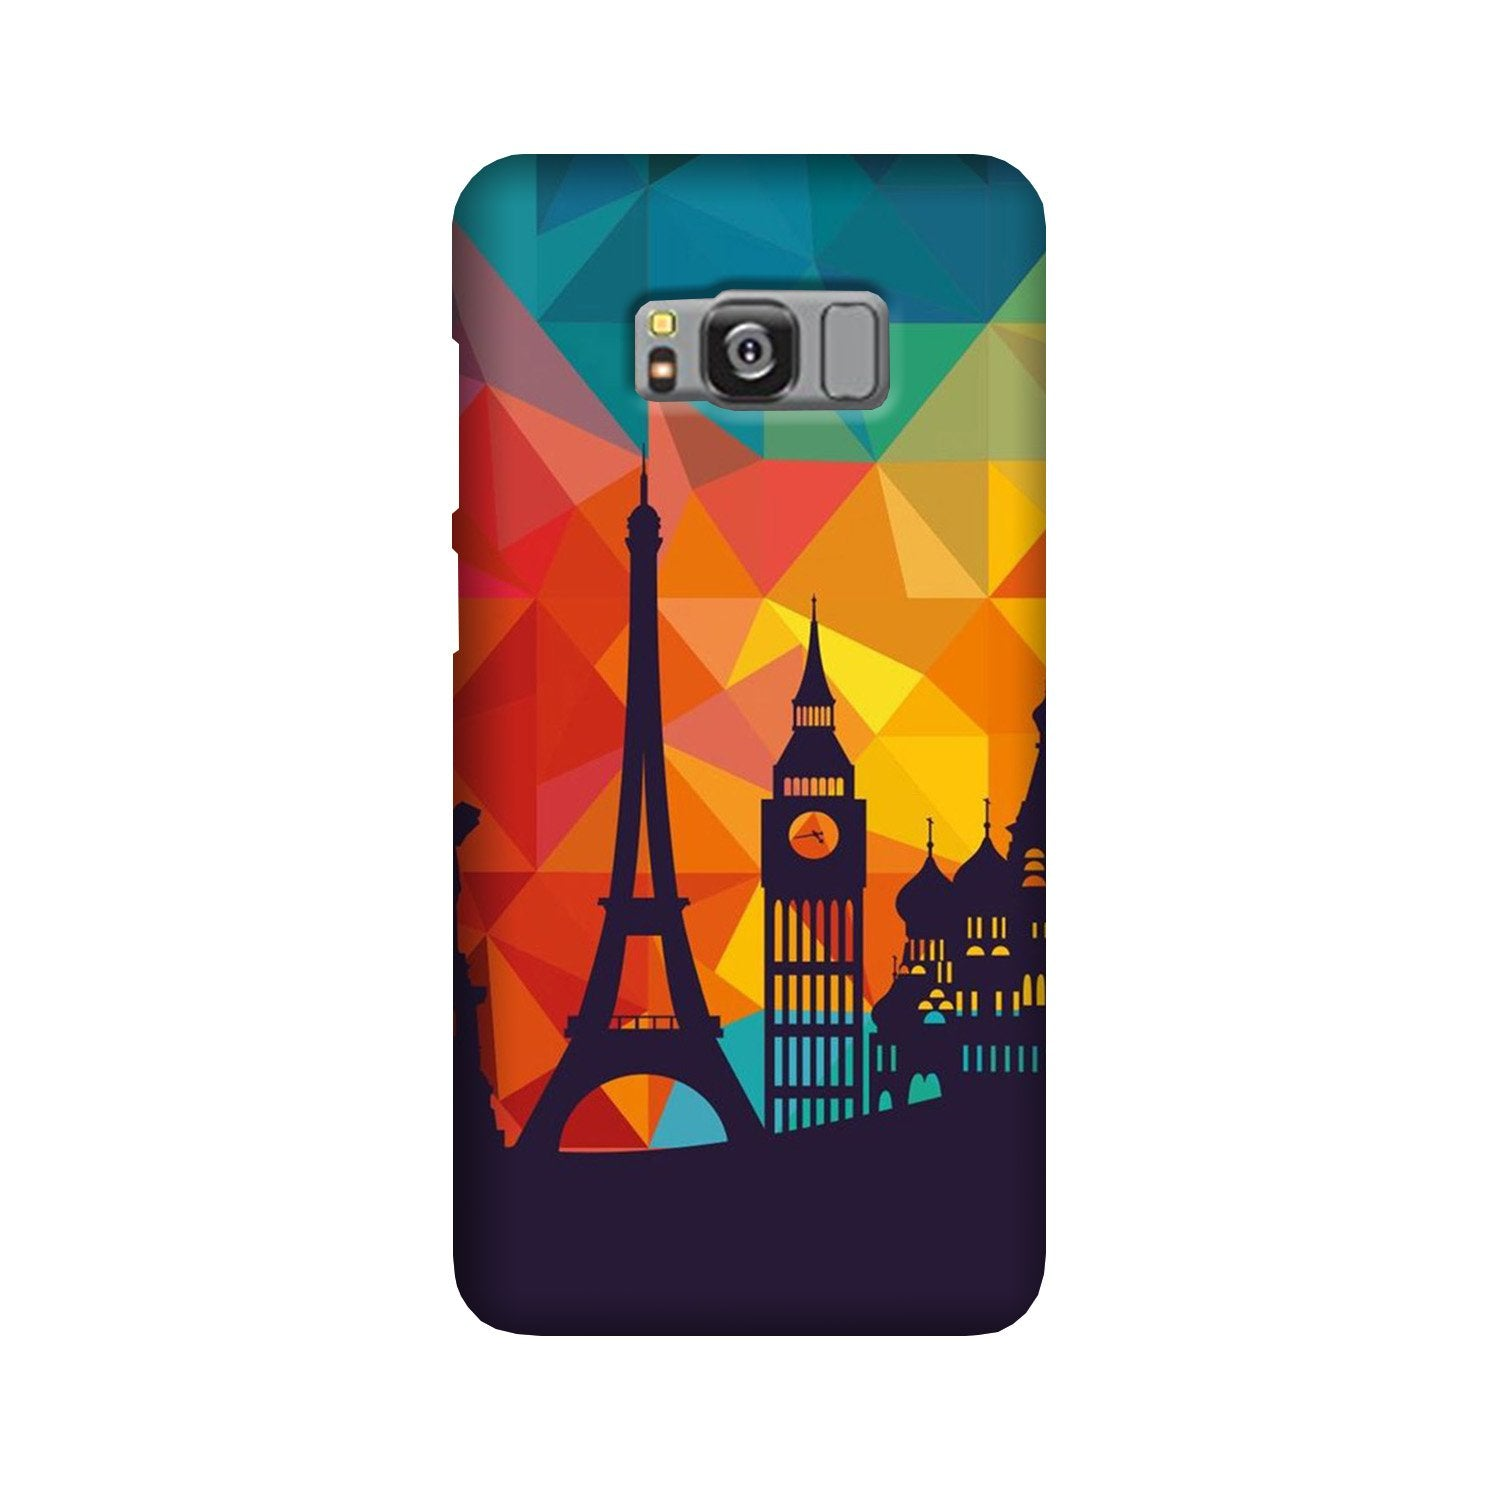 Eiffel Tower2 Case for Galaxy S8